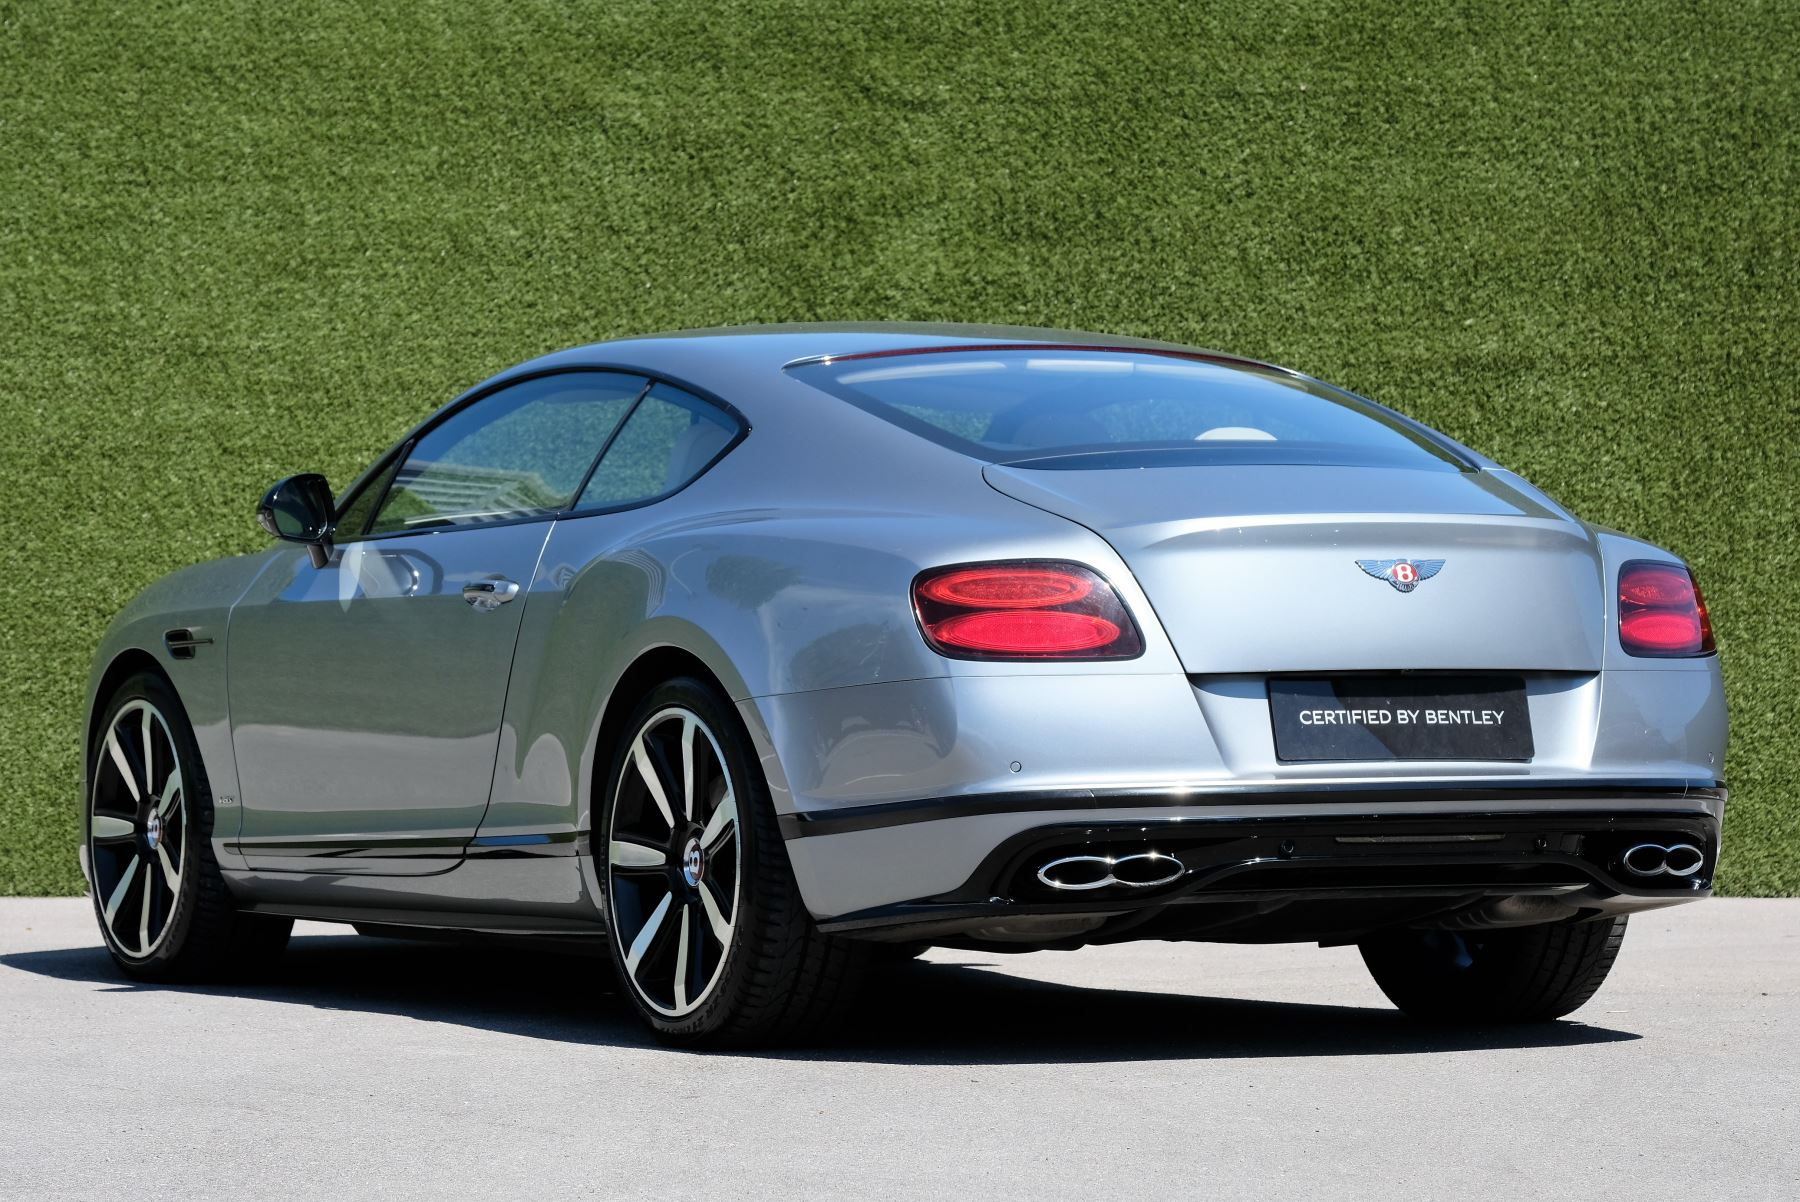 Bentley Continental GT V8 S Coupe 4.0 Mulliner Driving Specification 2dr image 4